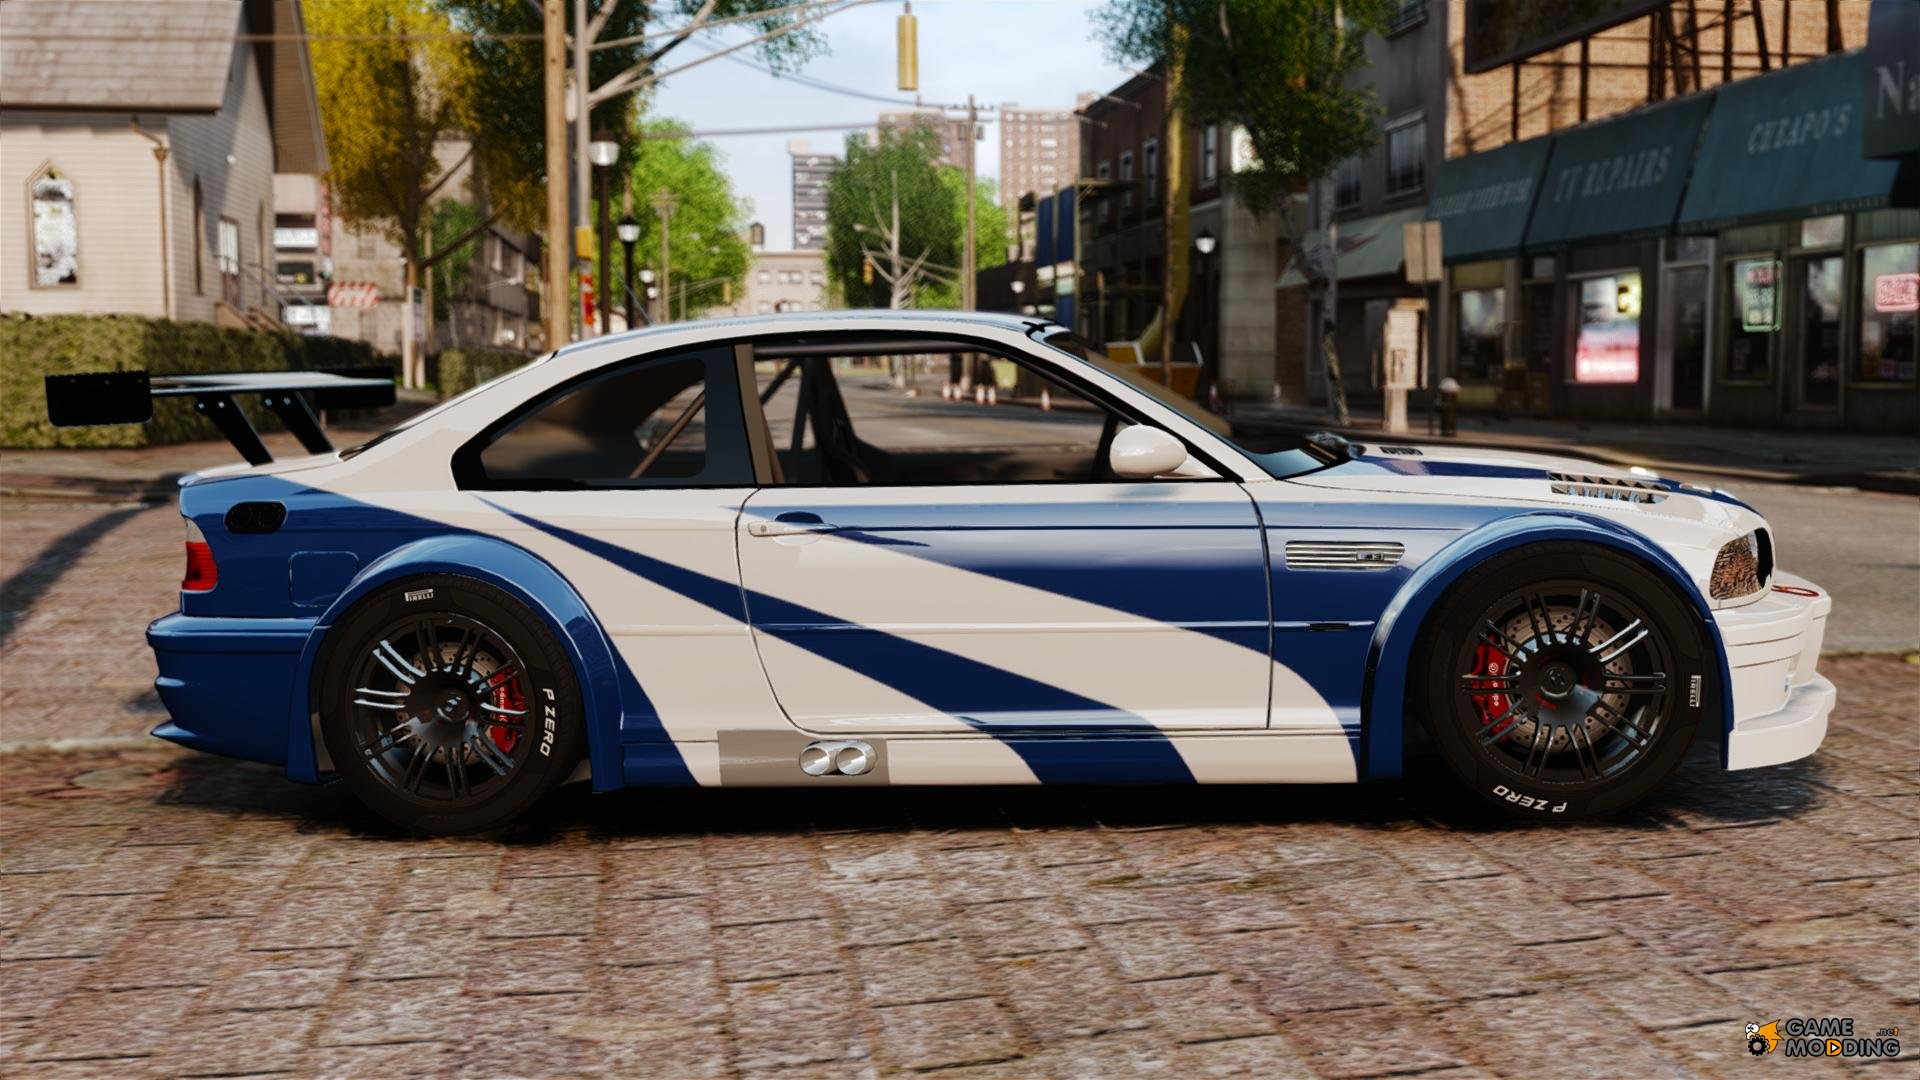 Need For Speed Bmw M3 Gtr Real Life Mlp Eg Daily Life Part 11 By